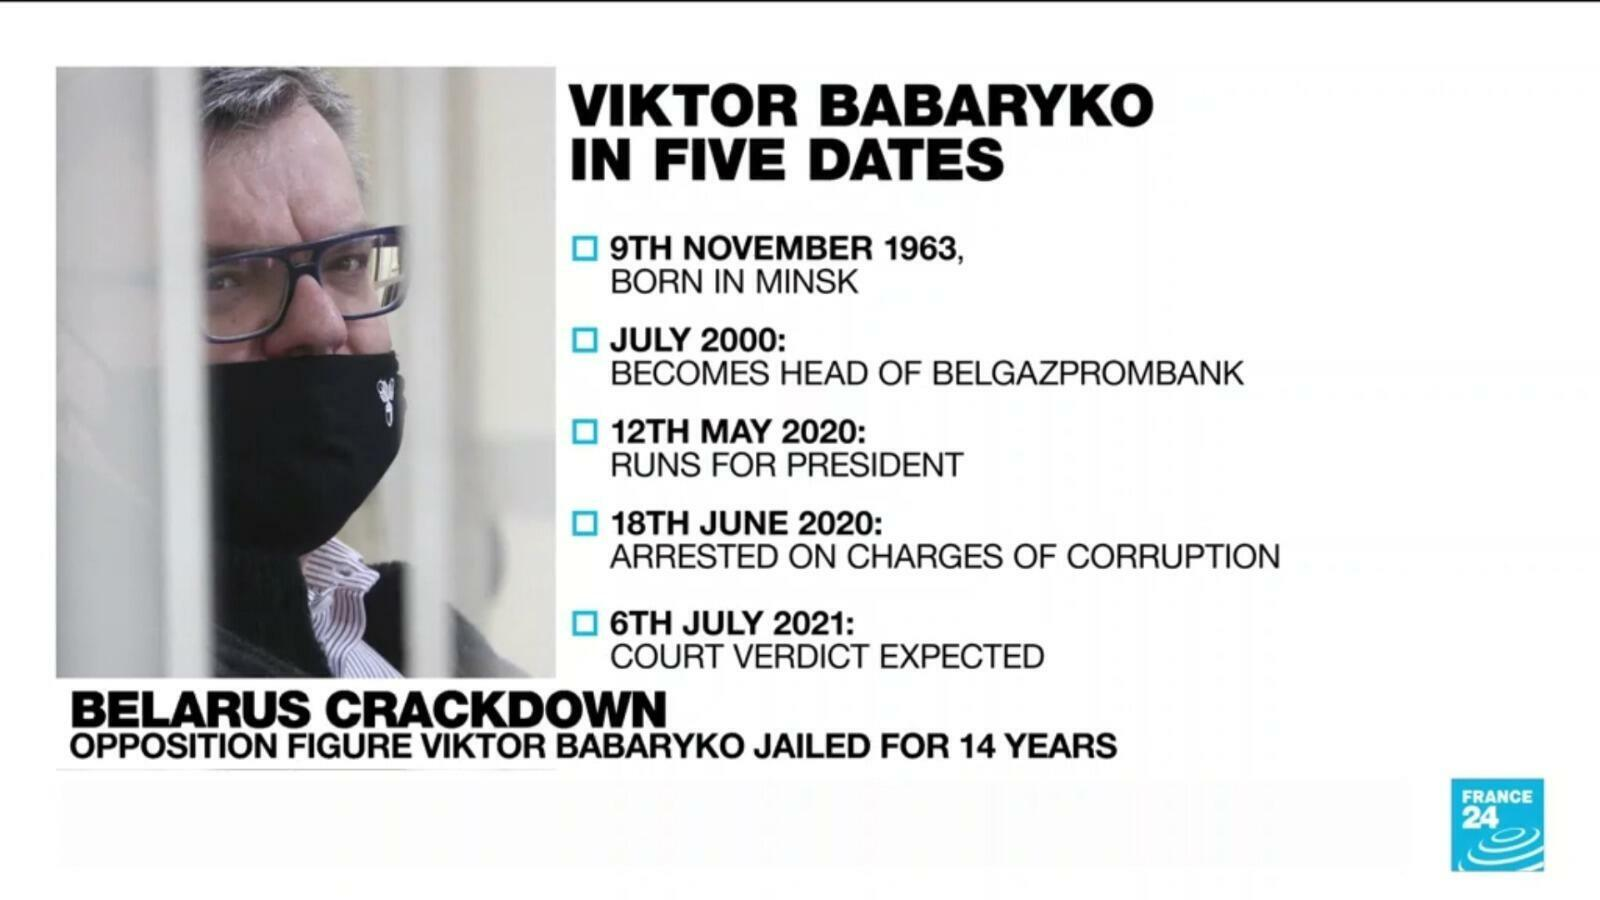 A Belarus court on July 6, 2021 sentenced opposition figure Viktor Babaryko to 14 years in jail on fraud charges>